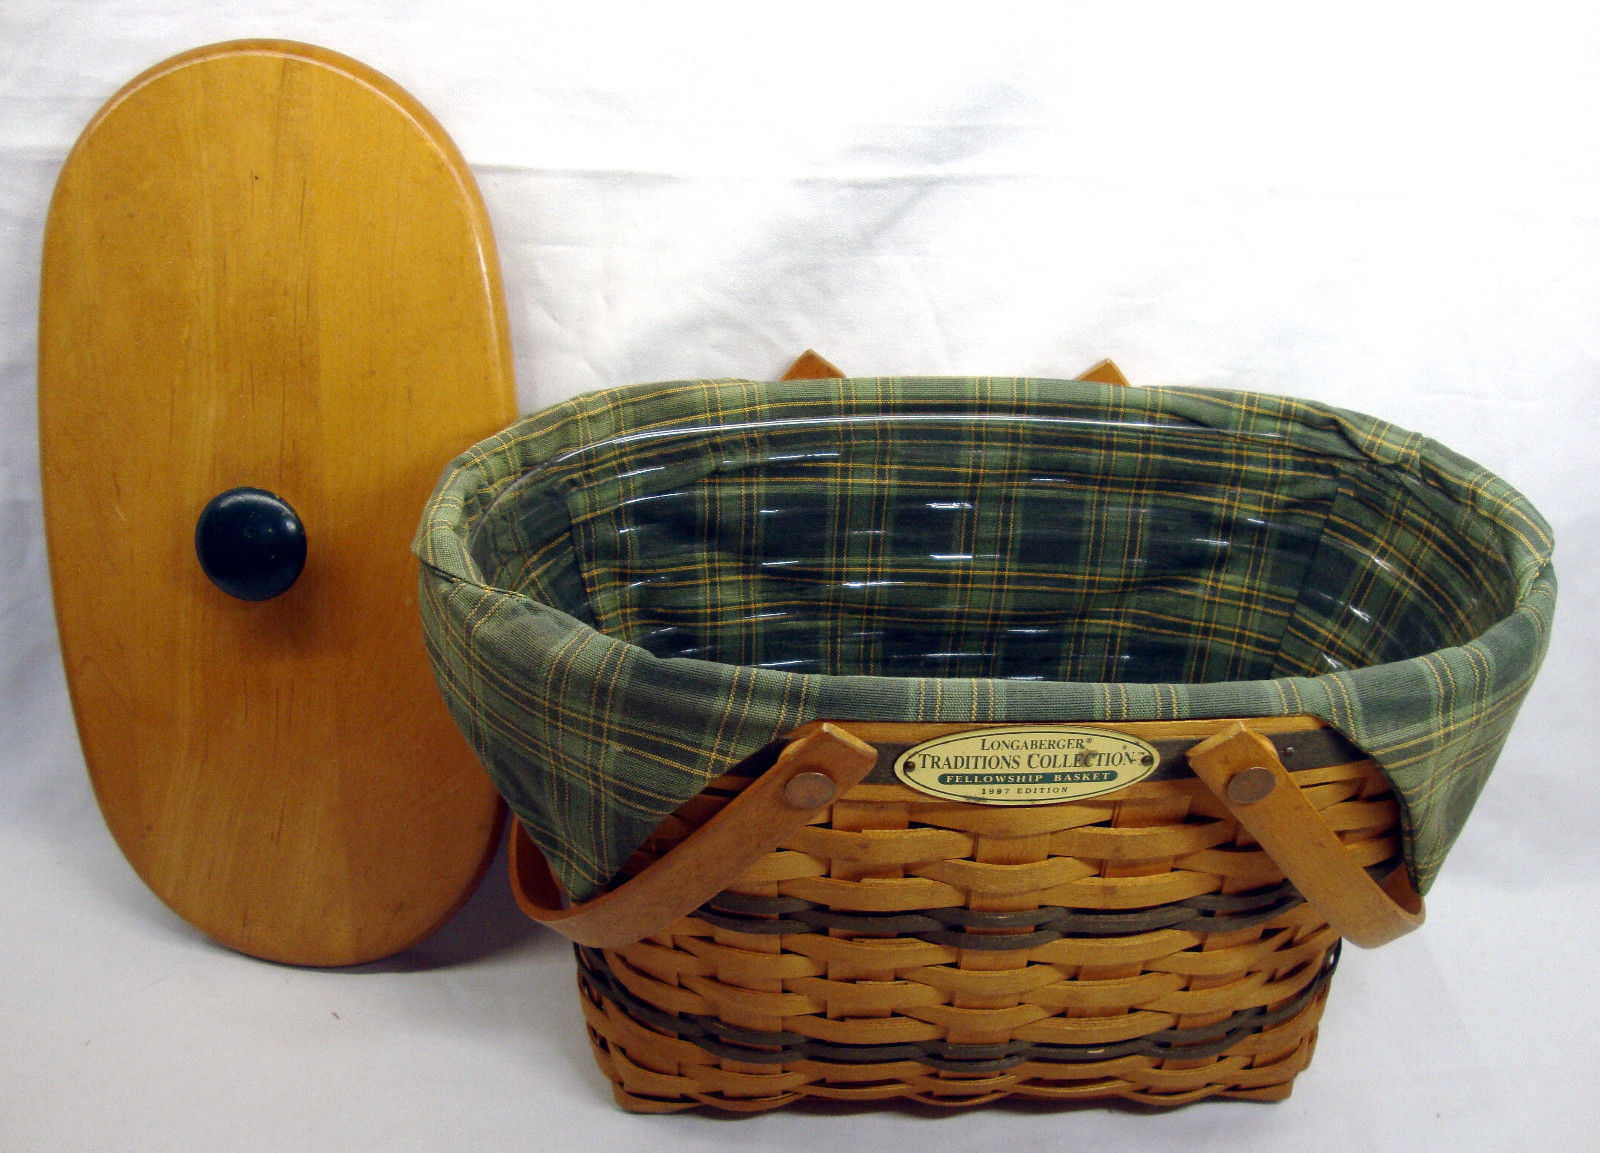 1997 Longaberger Fellowship Basket Traditions Collection  Liner, Protector, Lid